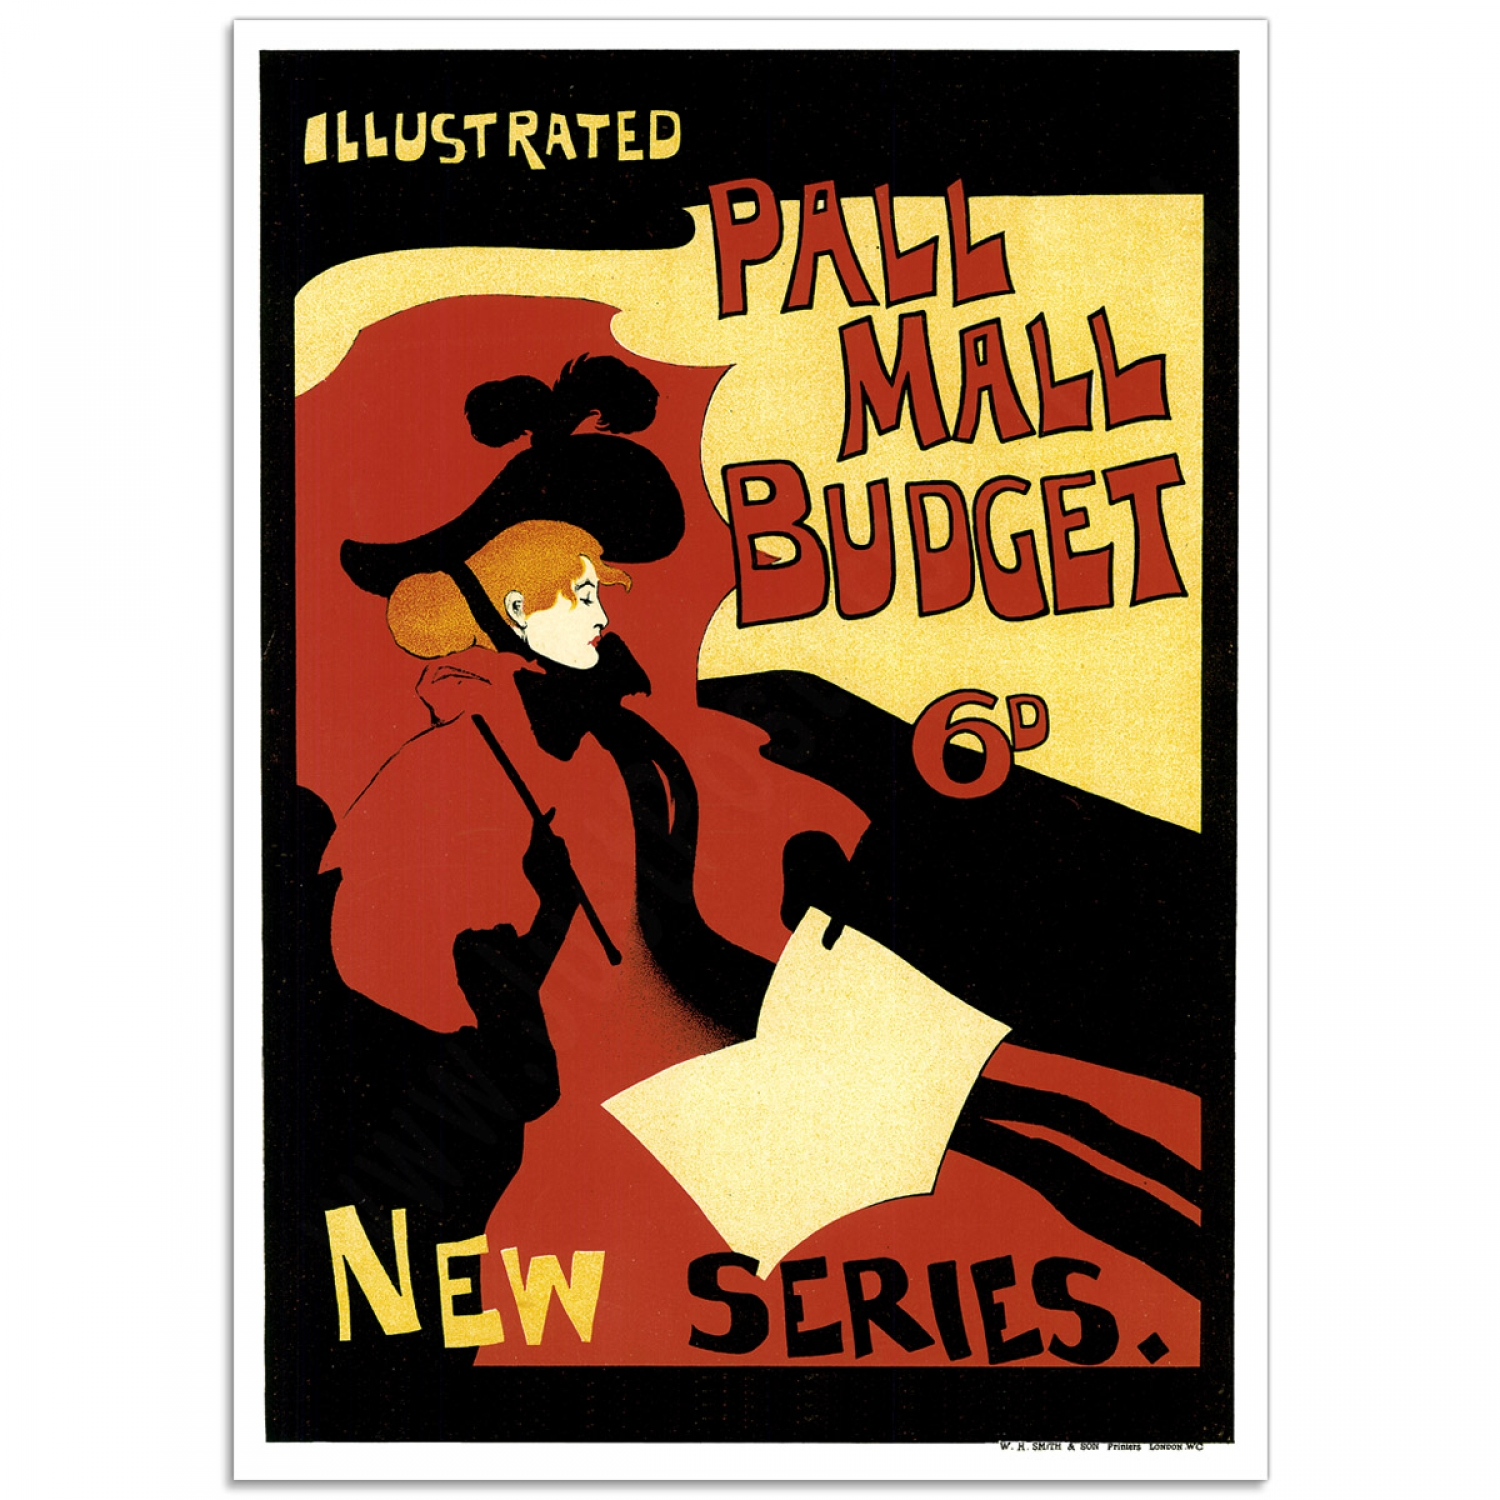 Vintage Book Cover Posters : Illustrated pall mall budget vintage book illustration